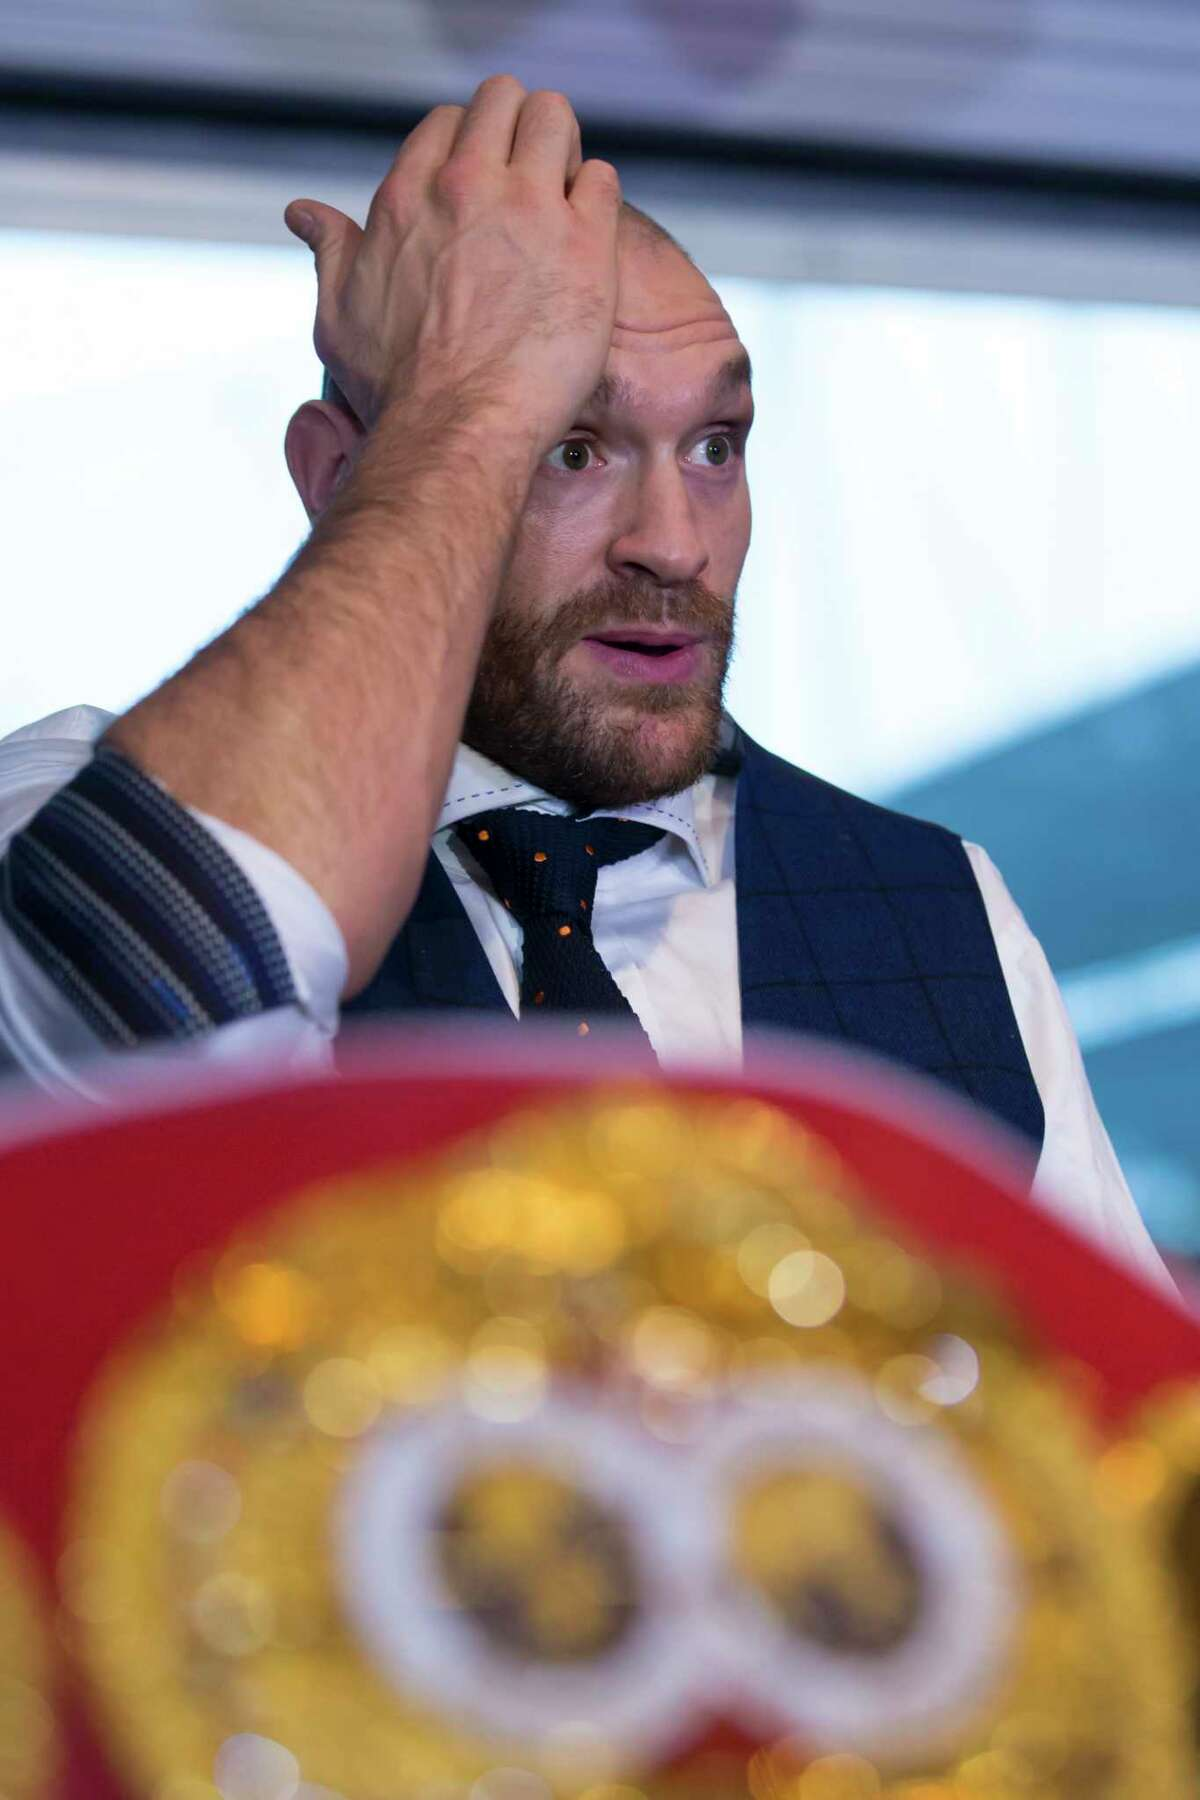 The IBF stripped Tyson Fury of its heavyweight title.